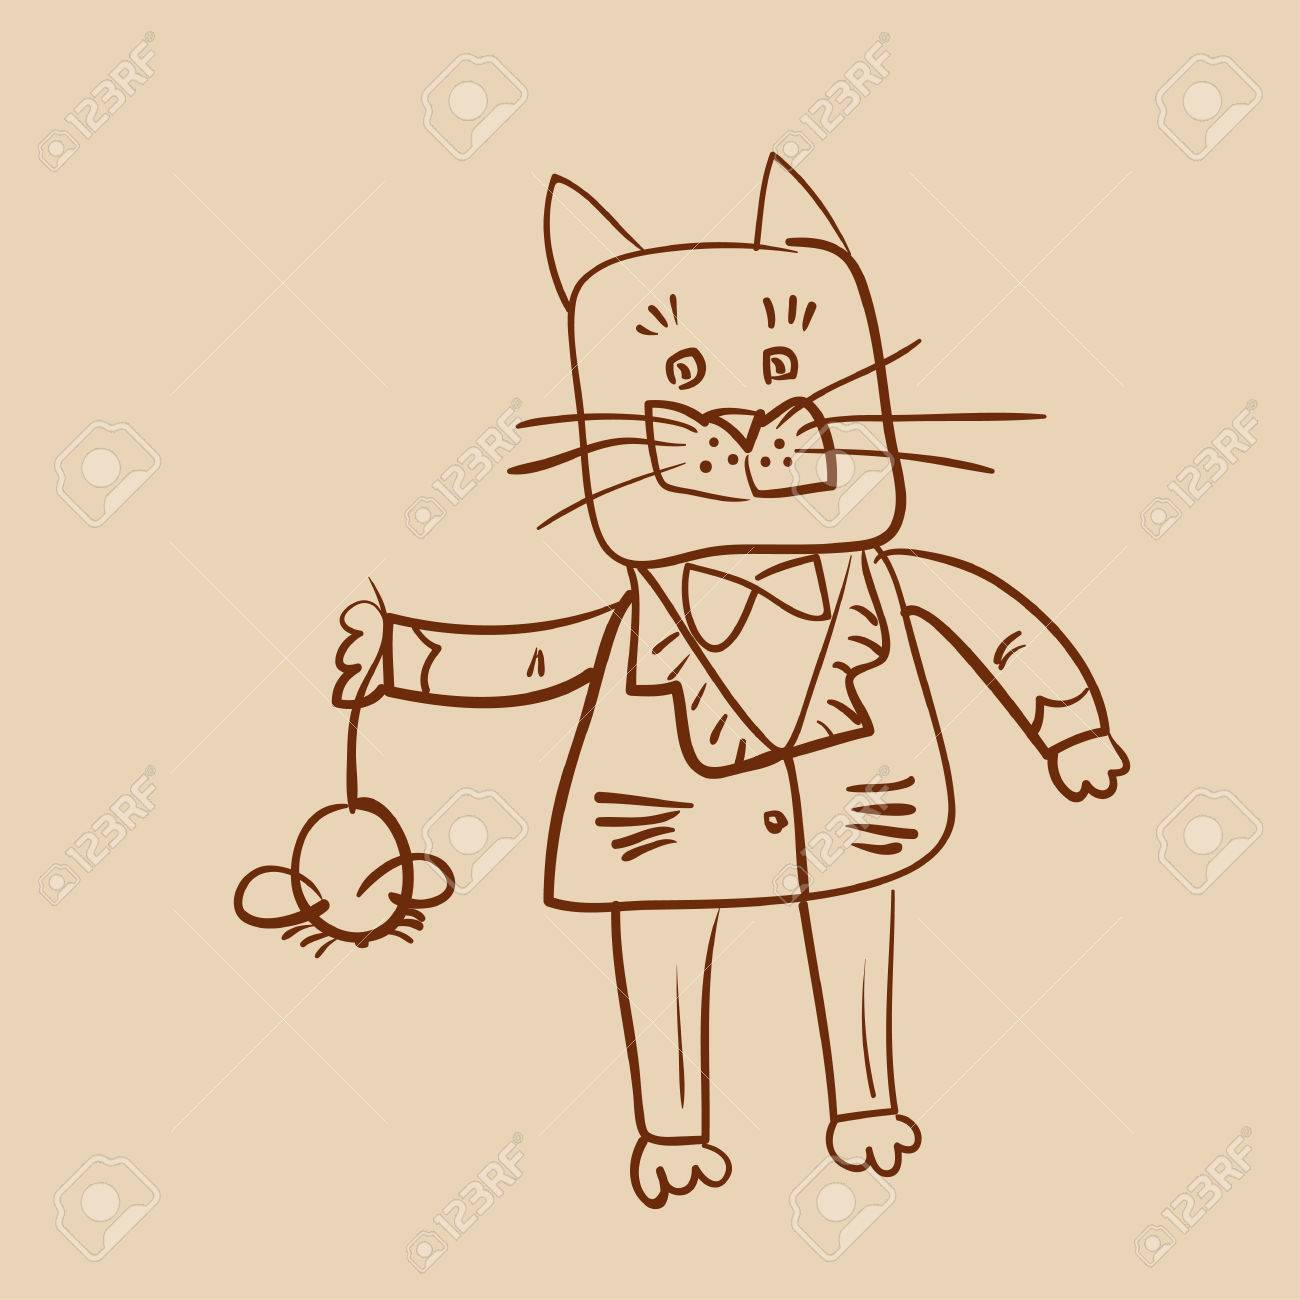 1300x1300 Outline Drawing Of Fat Dressed Cat Who Catch A Mouse Royalty Free